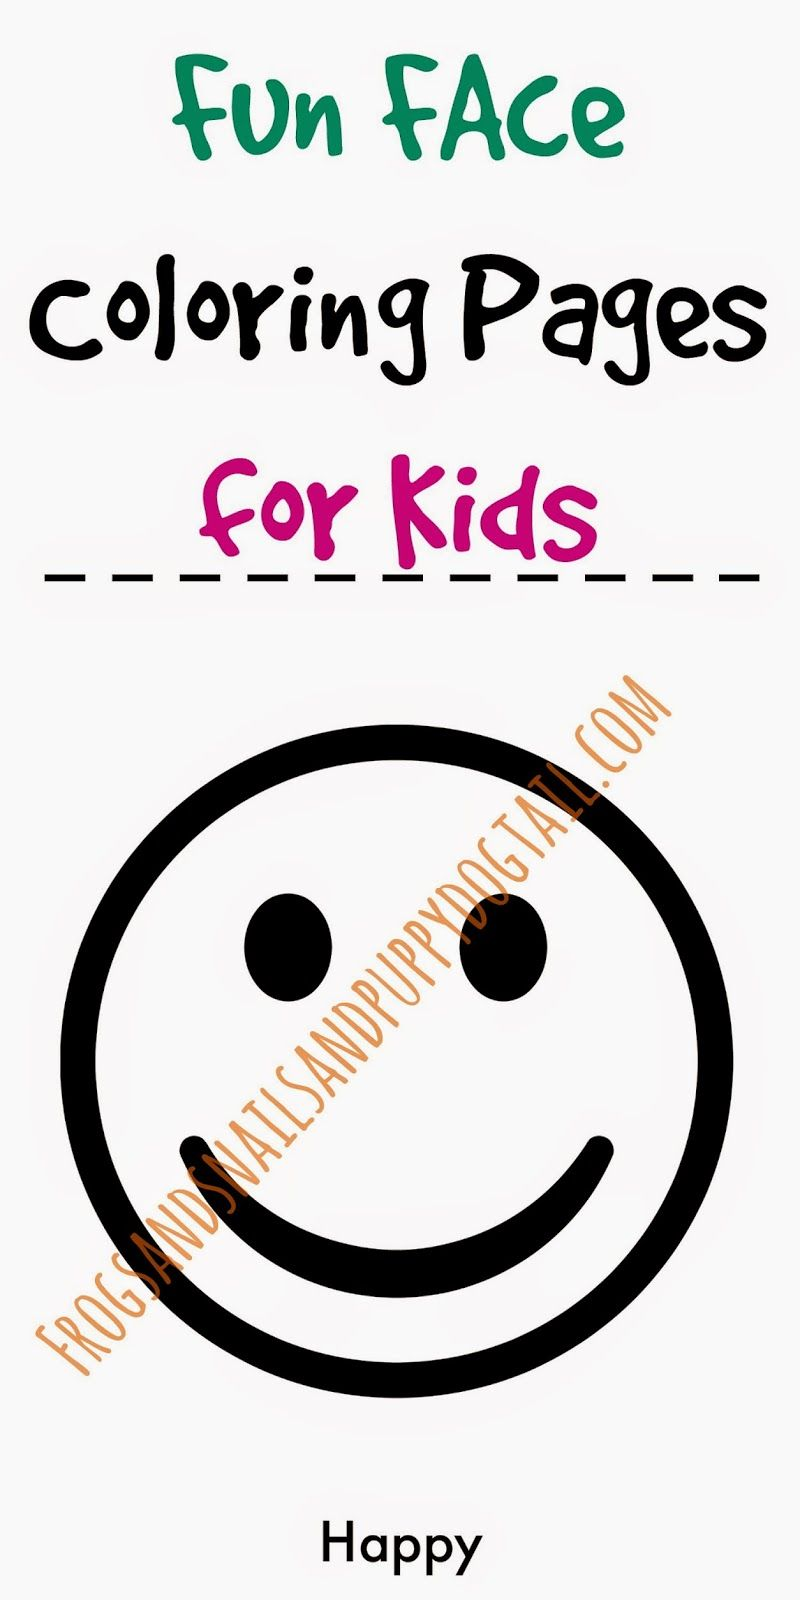 Fun Face Coloring Pages for Kids | Preschool education, Teaching ...